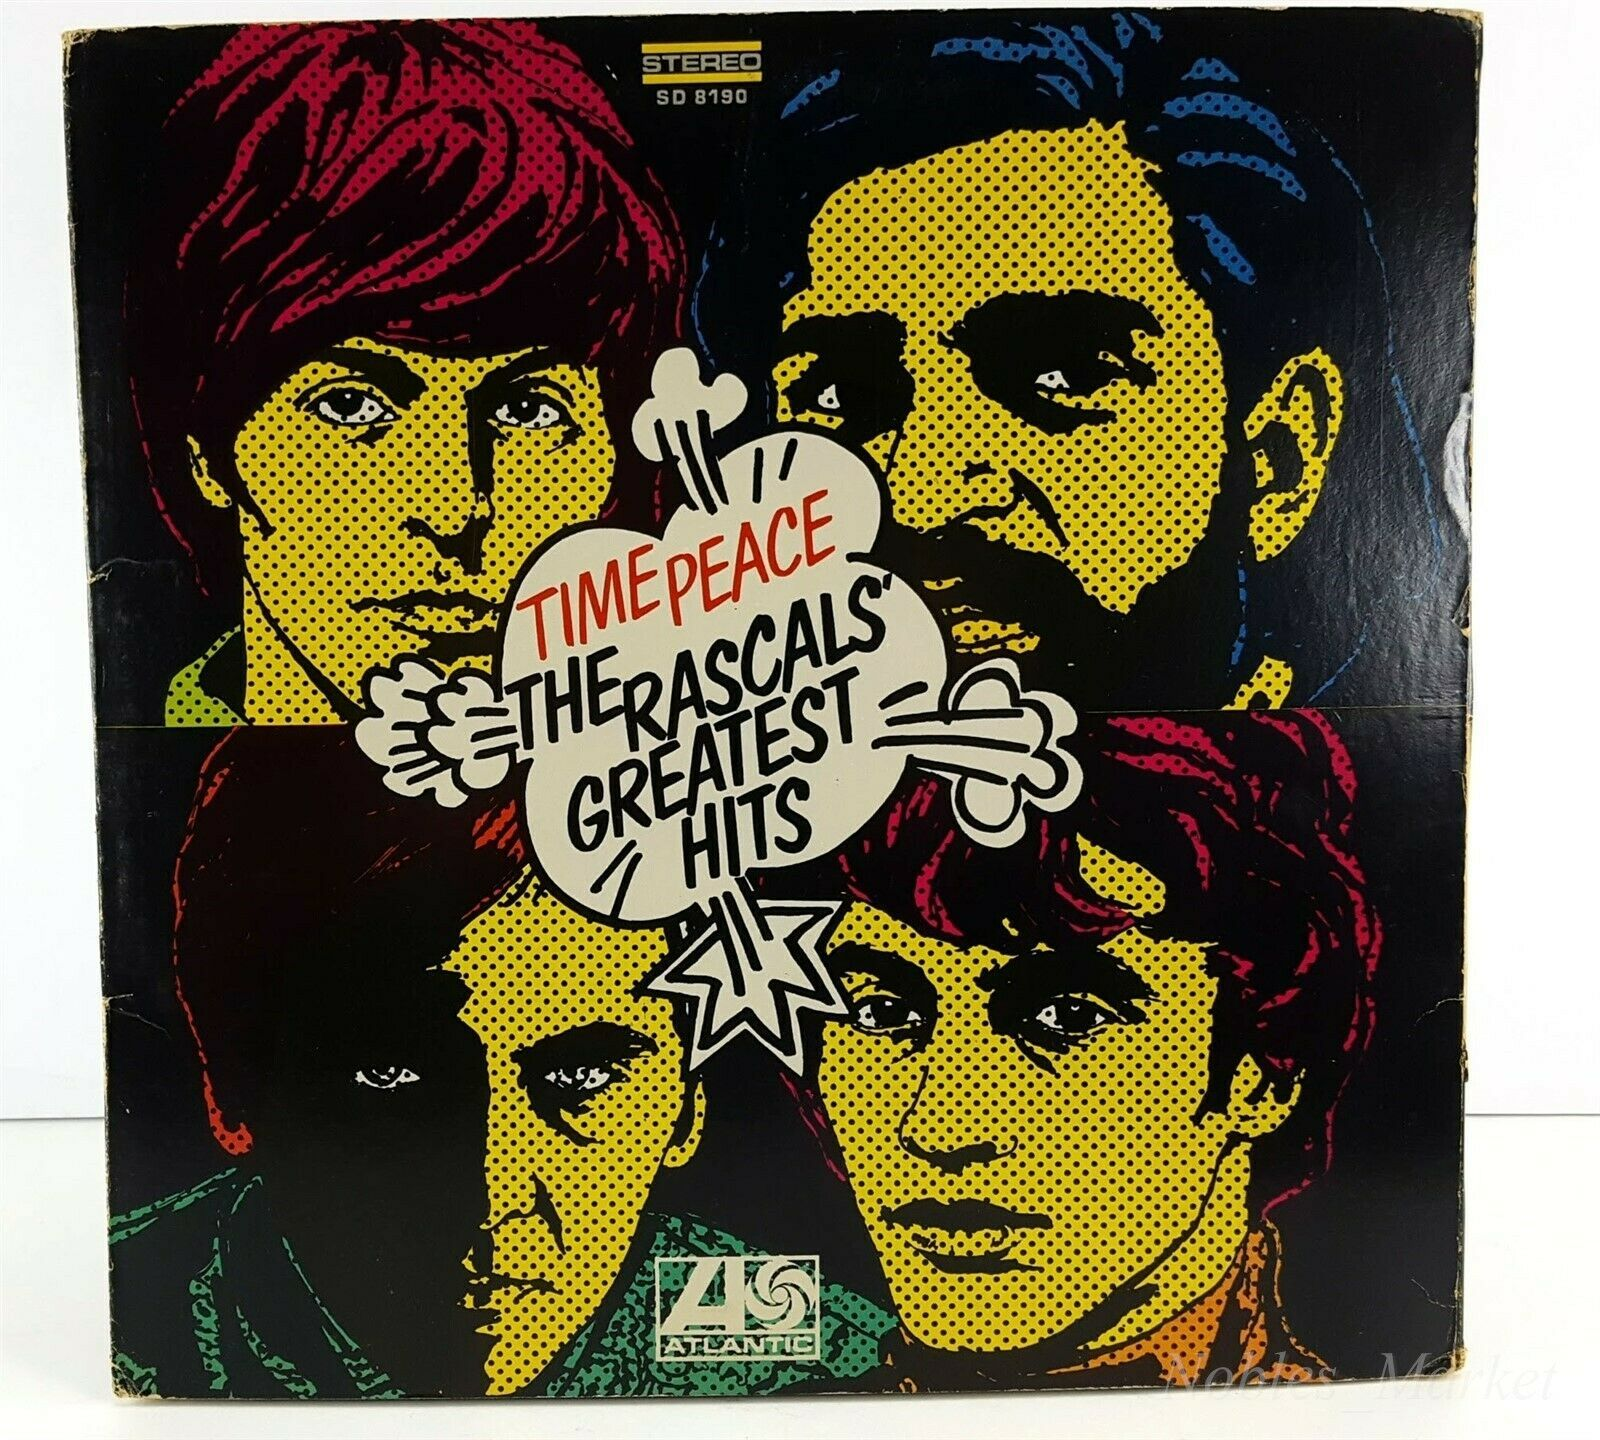 The Rascals, Time Peace Greatest Hits 1968 LP Record Atlantic SD 8190 Stereo